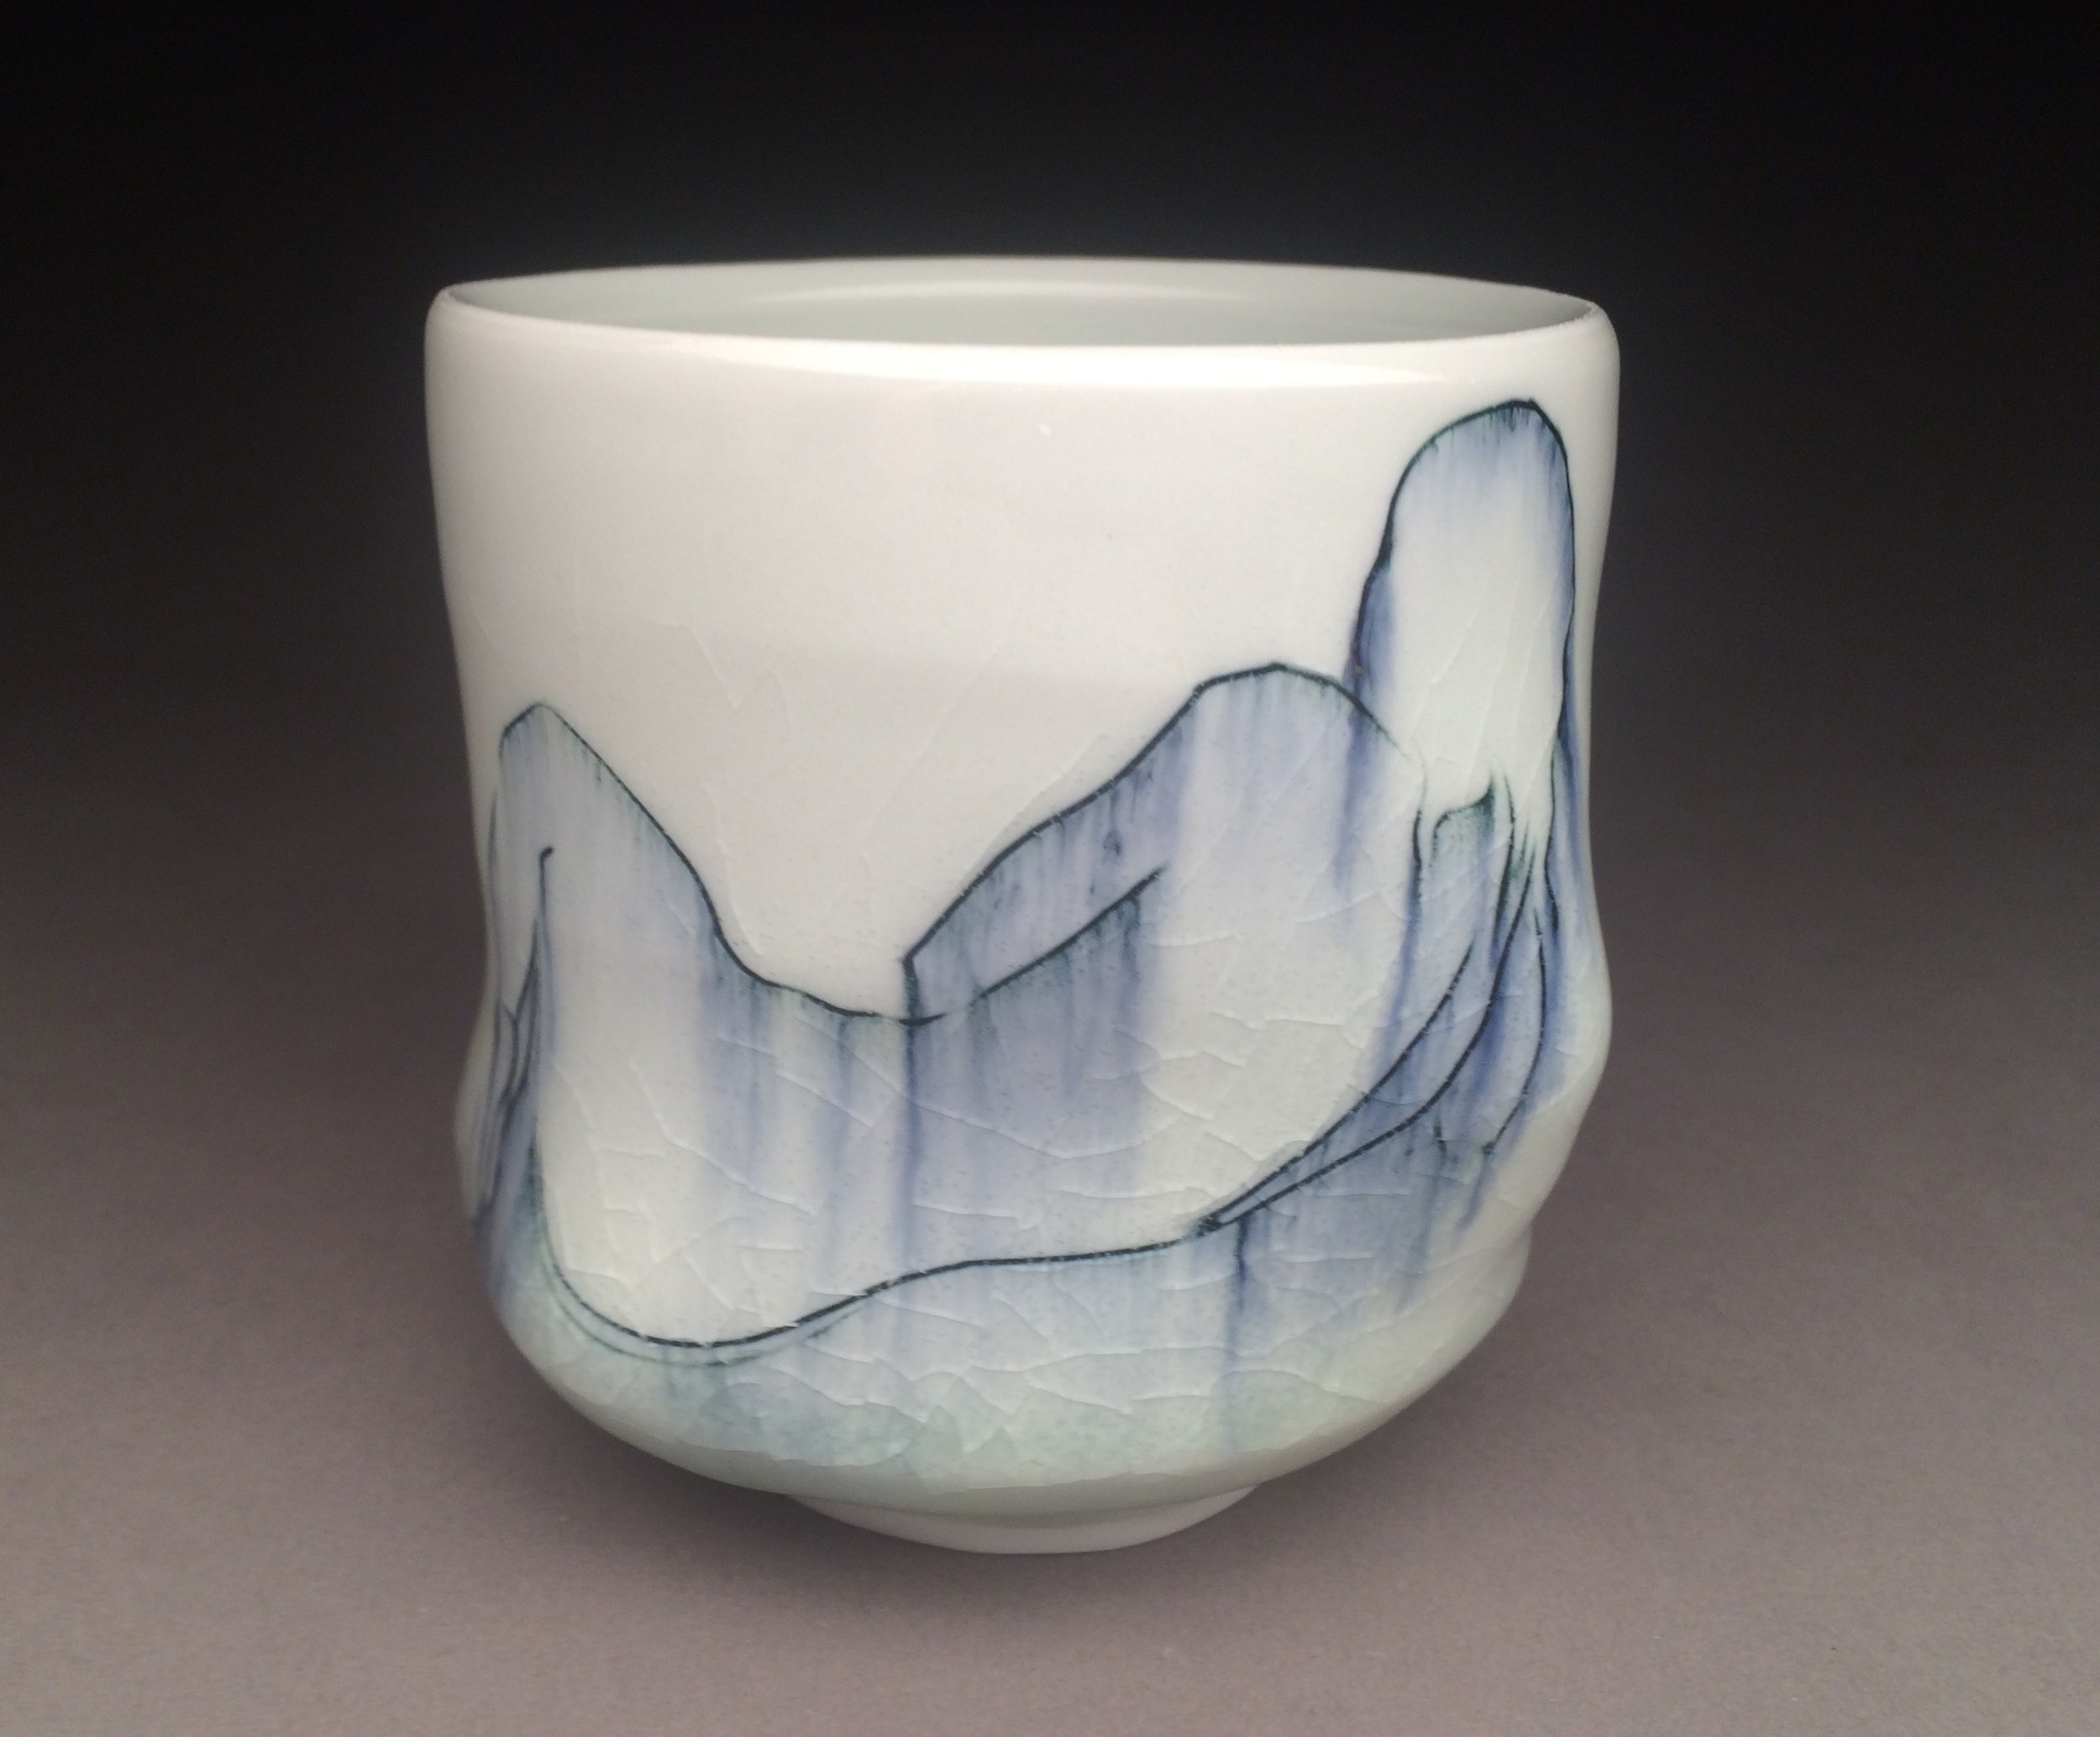 Amy Smith  Smith works intuitively in clay. Her open forms gently hold space. Fluid glazes break over carved surfaces. Her figurative cups are composites made up of two dimensional drawings.  Amy's website:  http://www.amysmithporcelain.com/